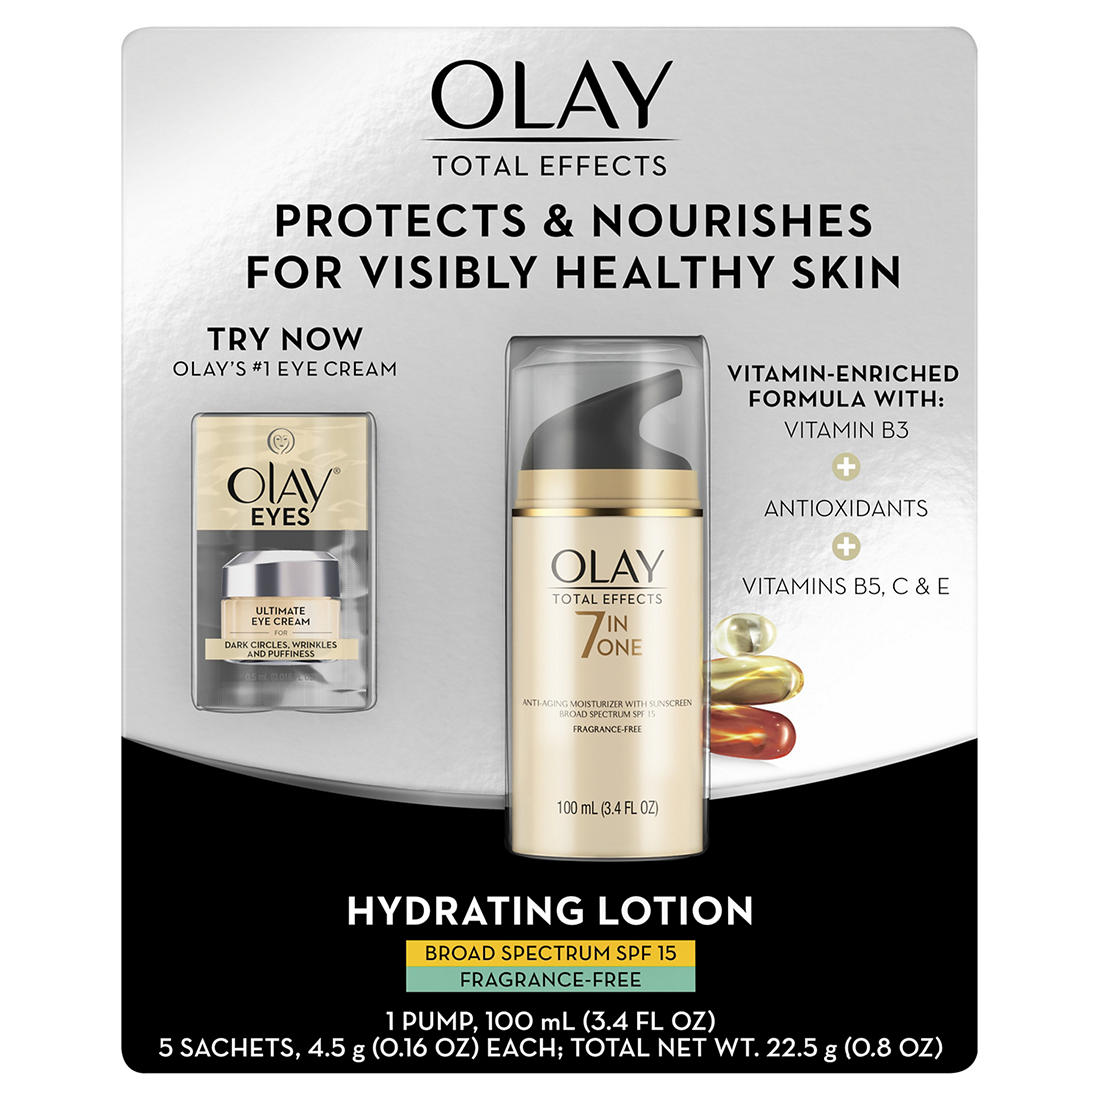 Olay Total Effects Spf 15 Fragrance Free Face Moisturizer 100ml